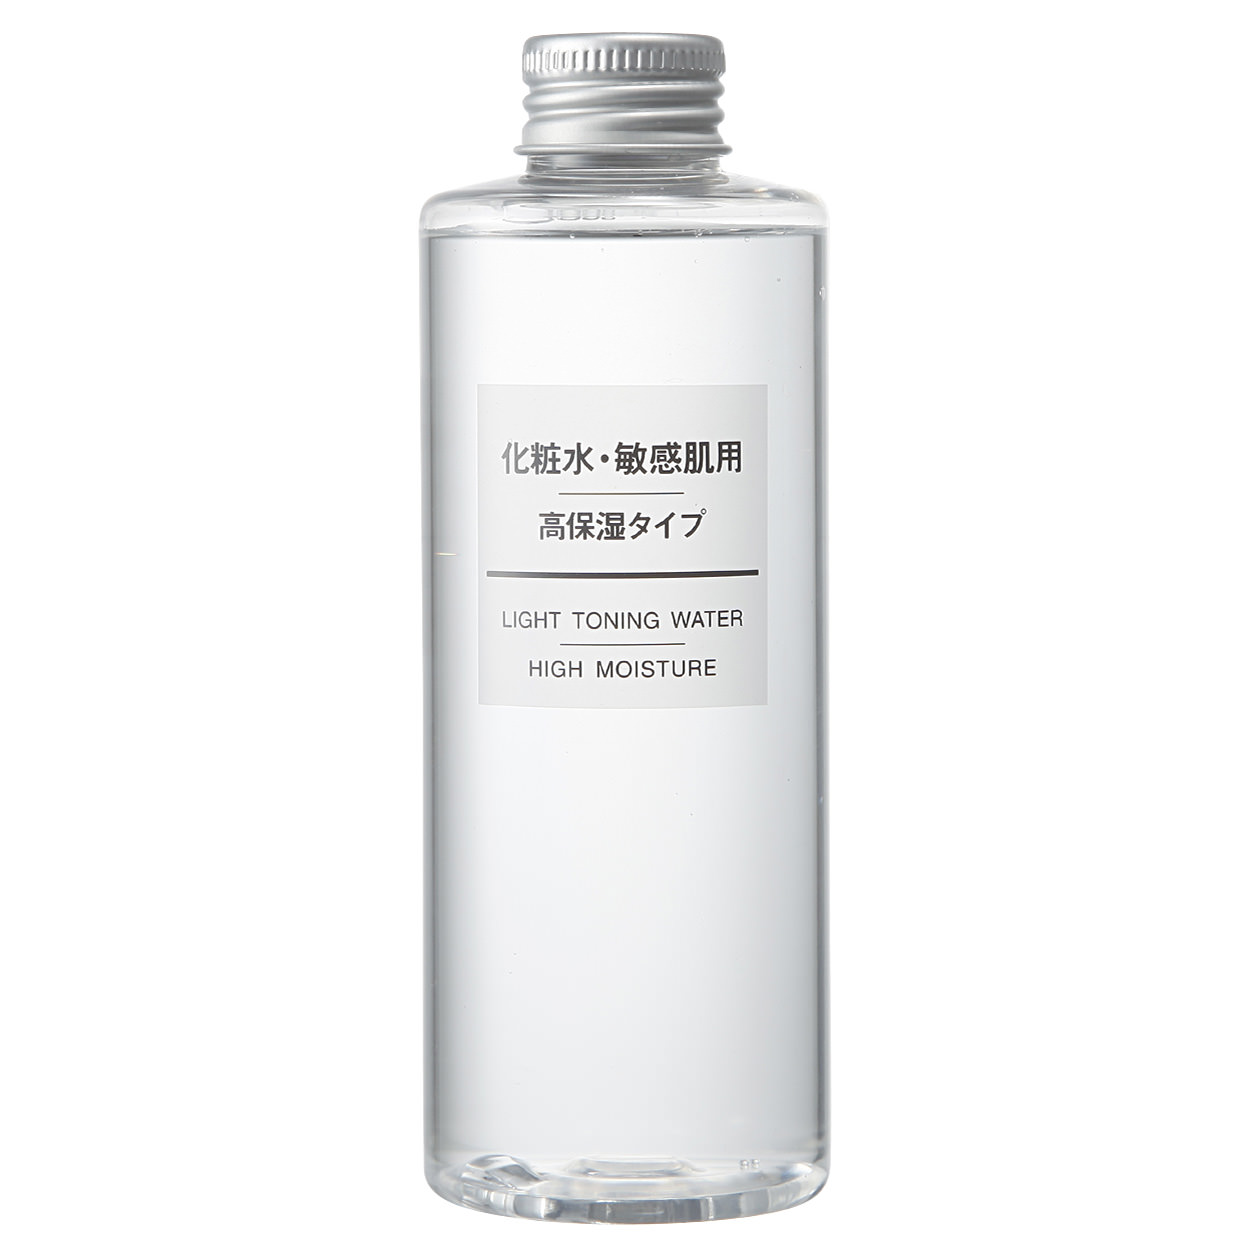 Light Toning Water High Moisture - 200ml